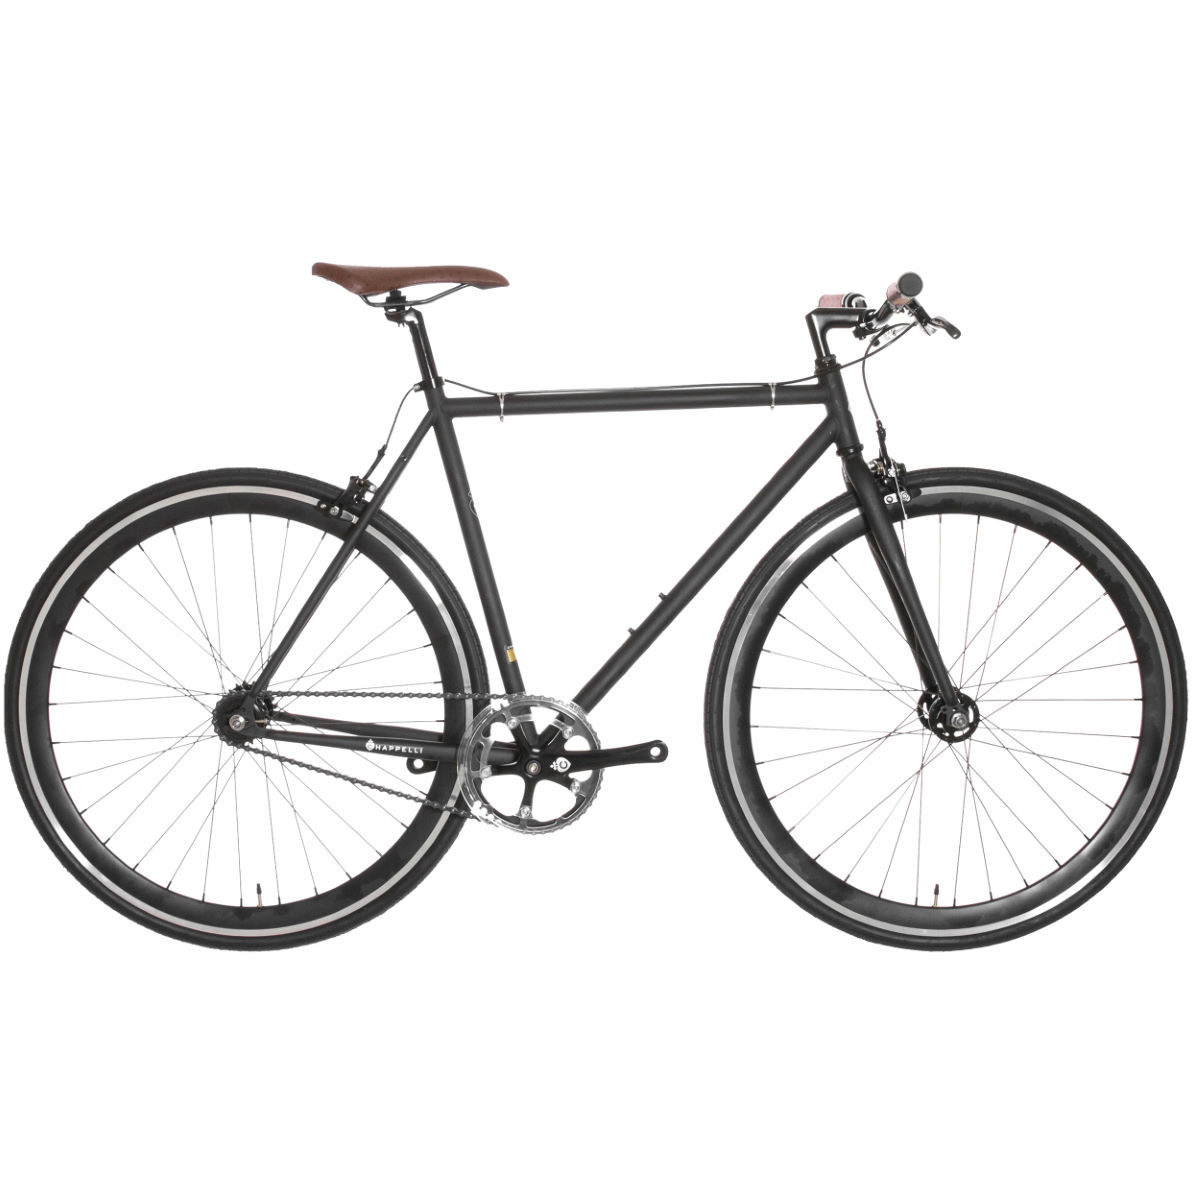 Vélo Chappelli Modern Single Speed (2016) - 61cm Noir/Noir Single speed